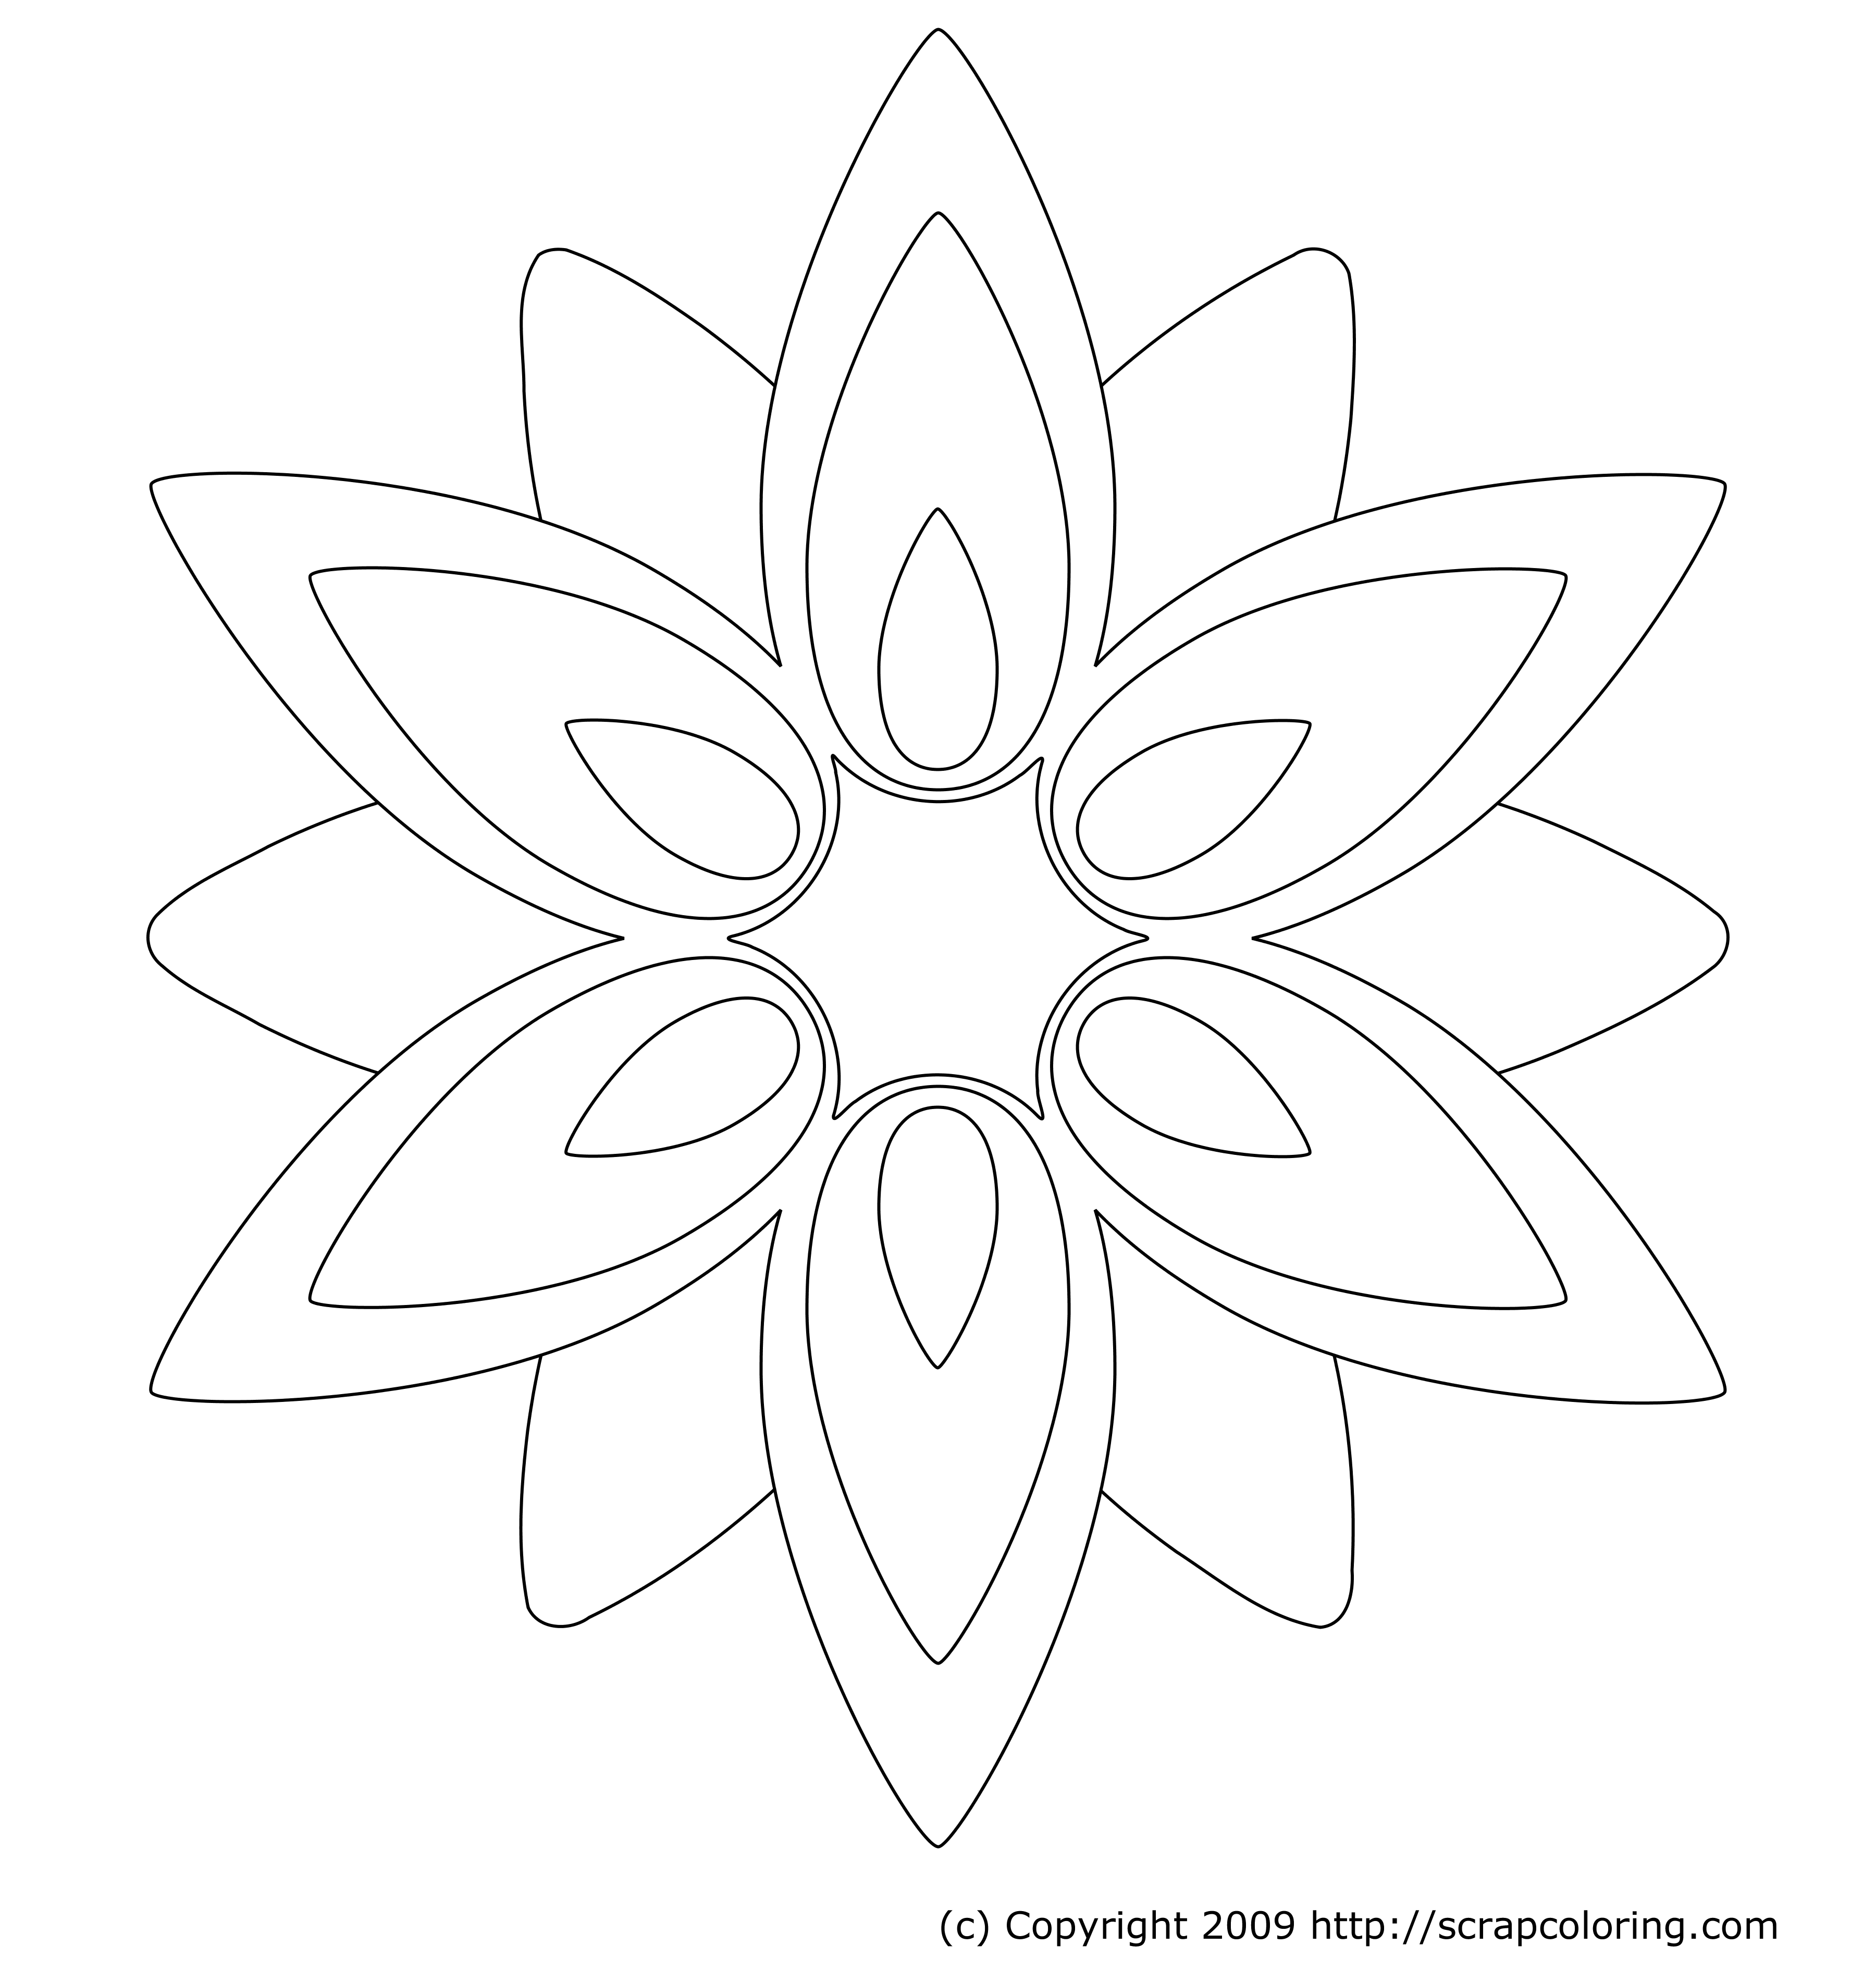 Adult Cute Geometric Flower Coloring Pages Images cute geometric flower coloring pages az rose window page gallery images